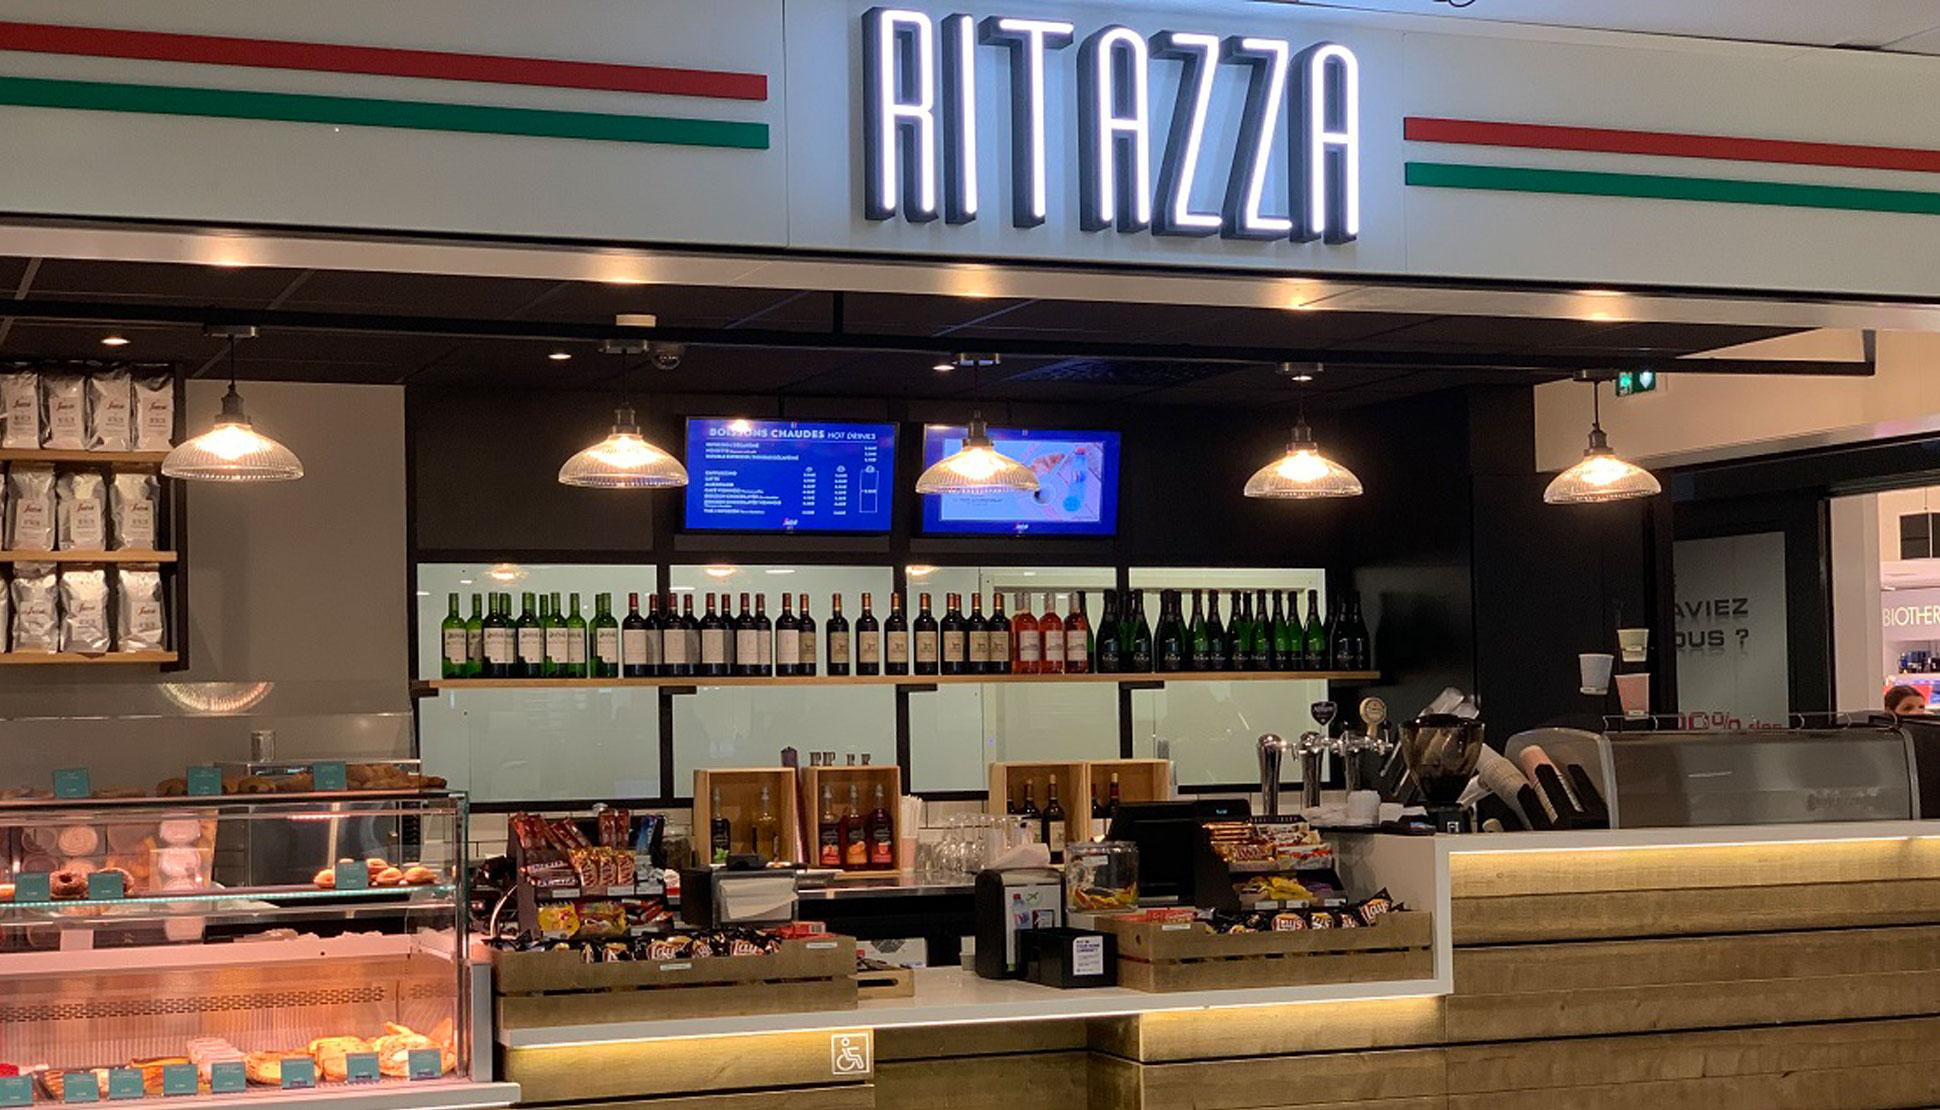 Ritazza - Hall A